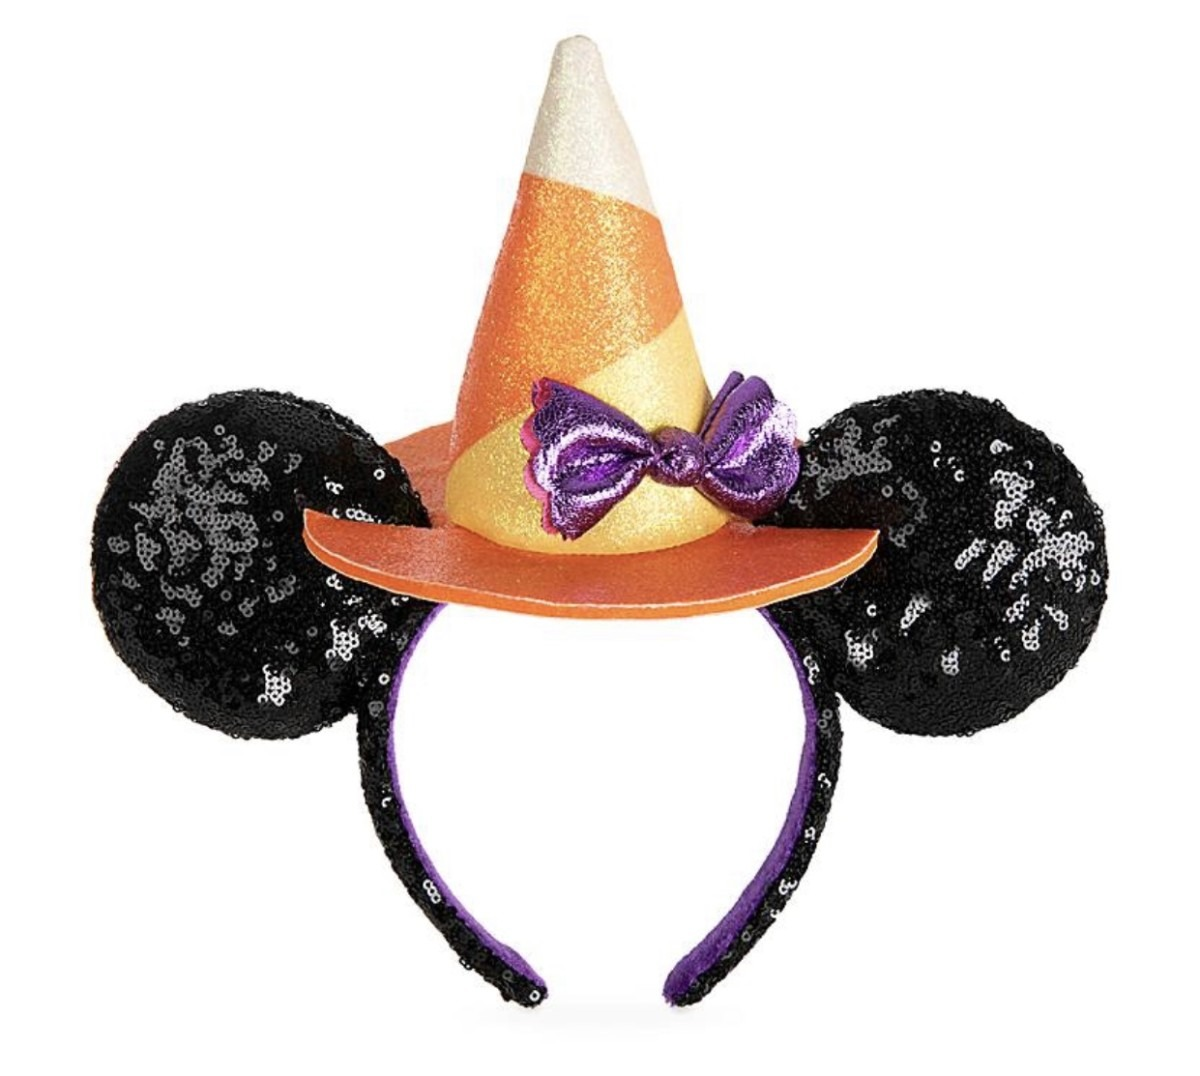 NEW Disney Parks Halloween Merch on shopDisney! 2